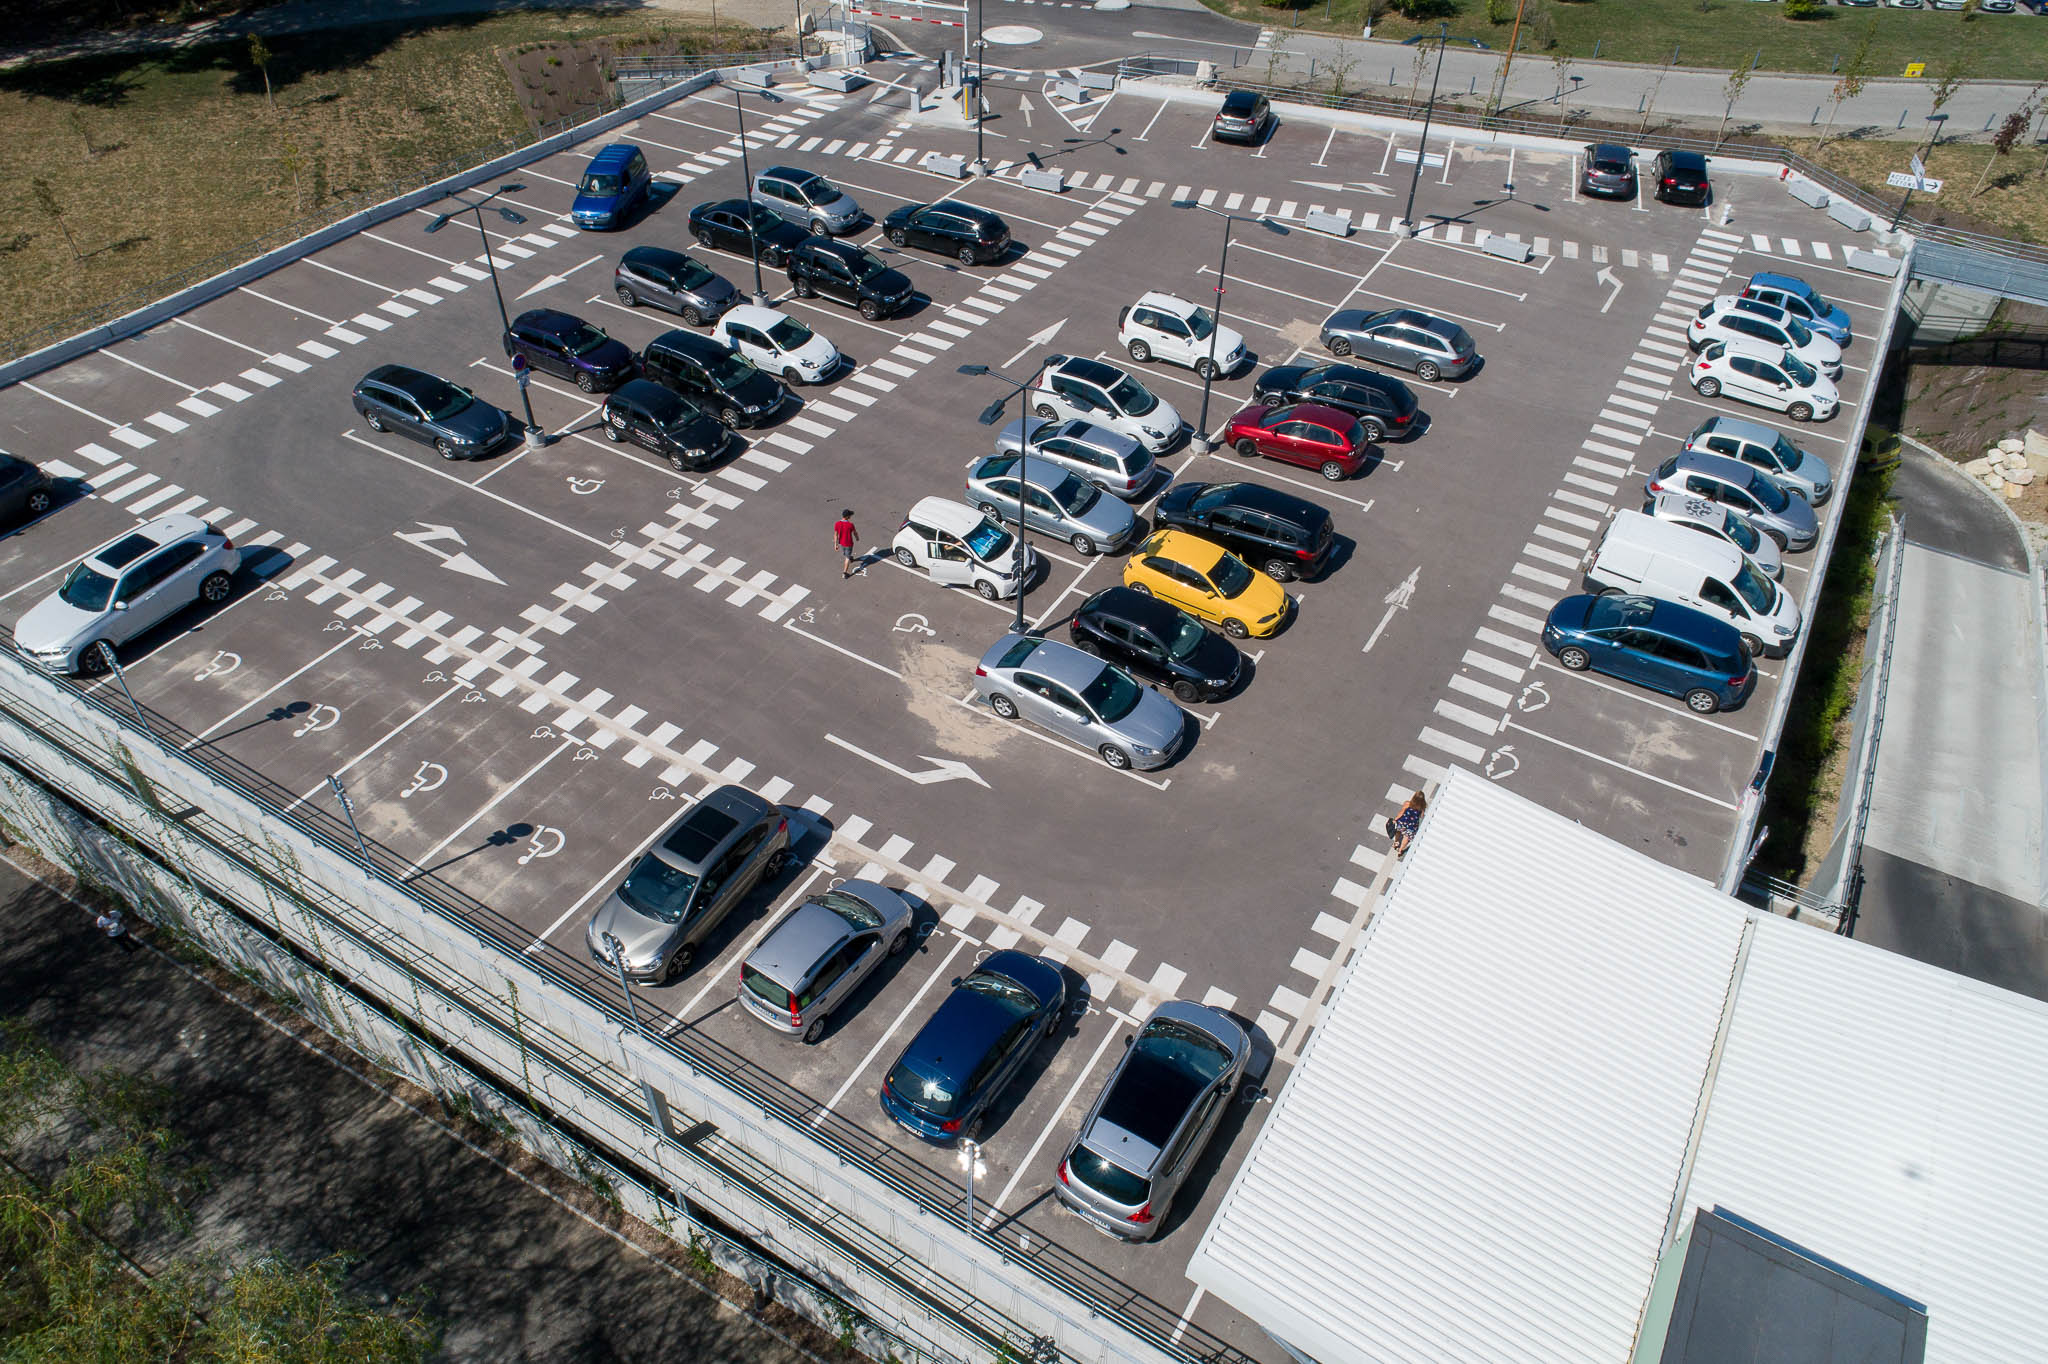 CHANGE hopital chu annecy parking silo aérien centre hospitalier clinique